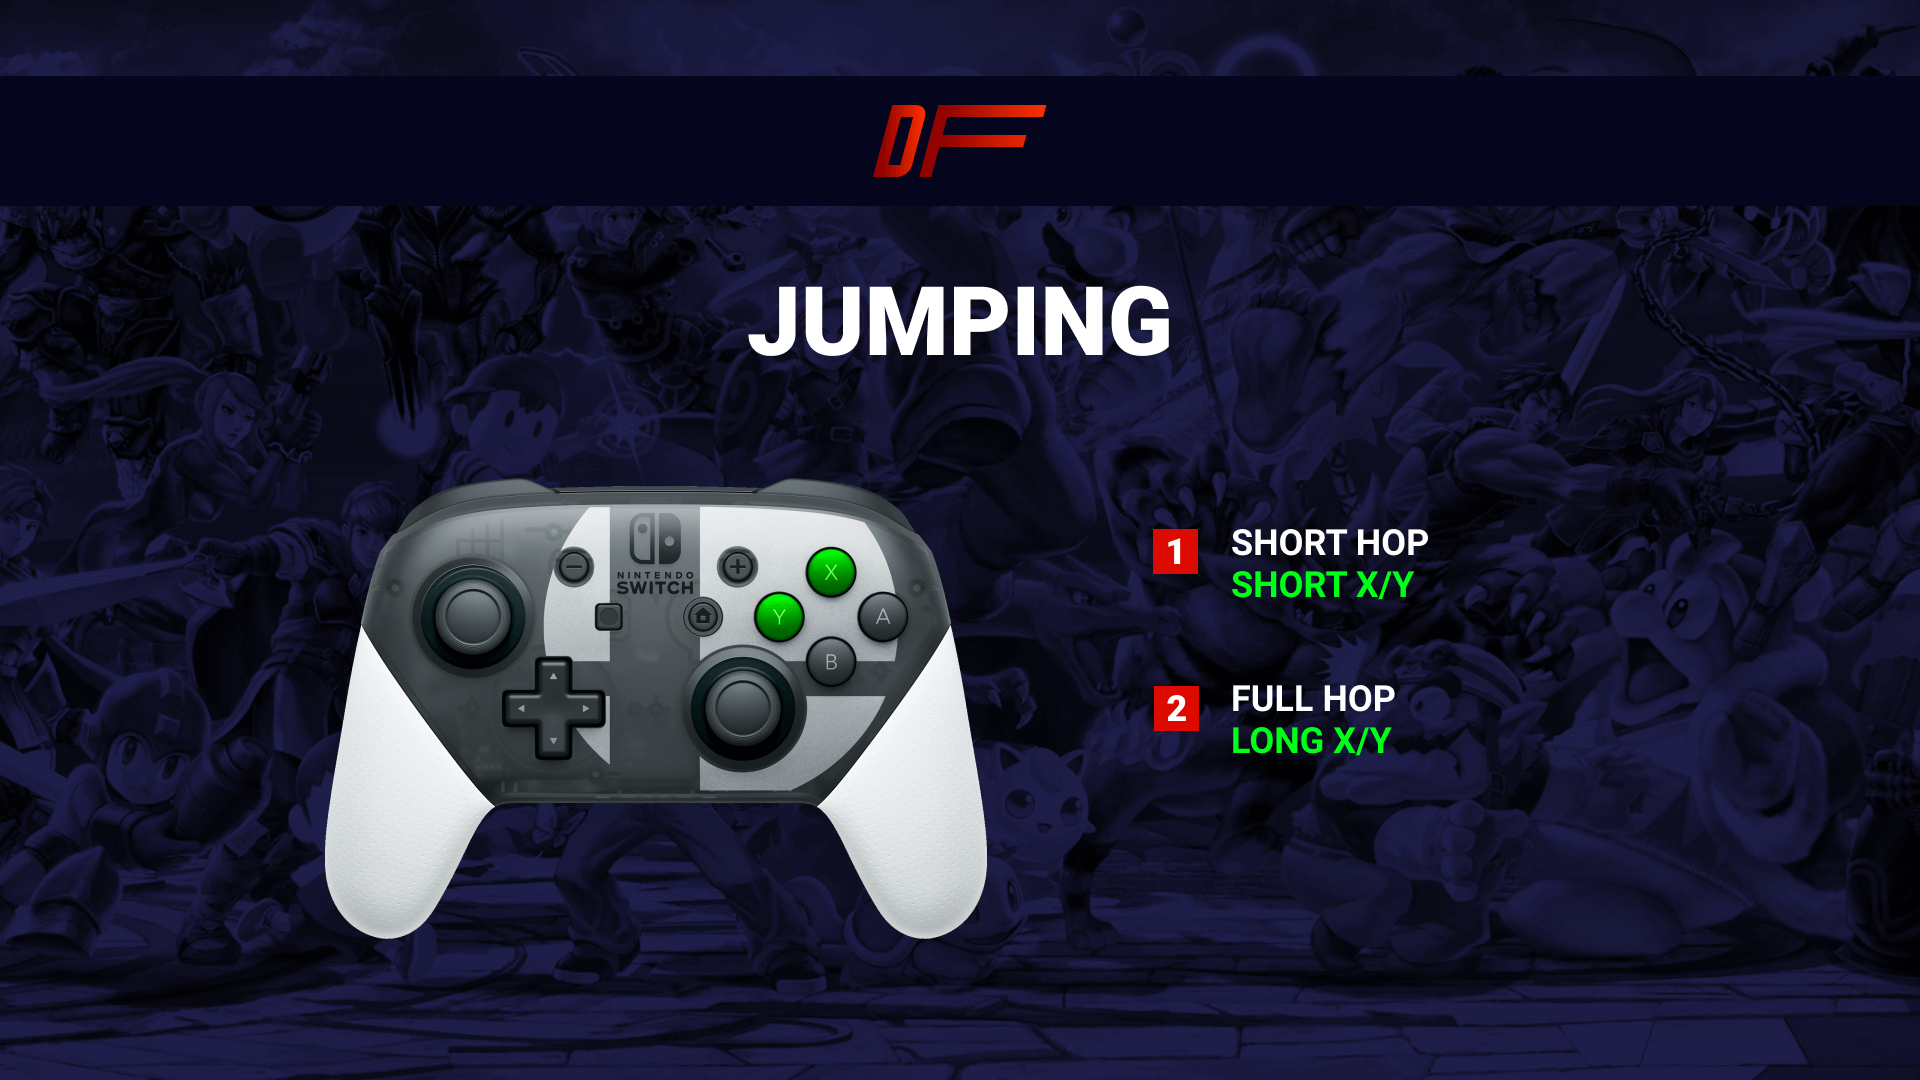 Controls in Smash Ultimate: Jumping